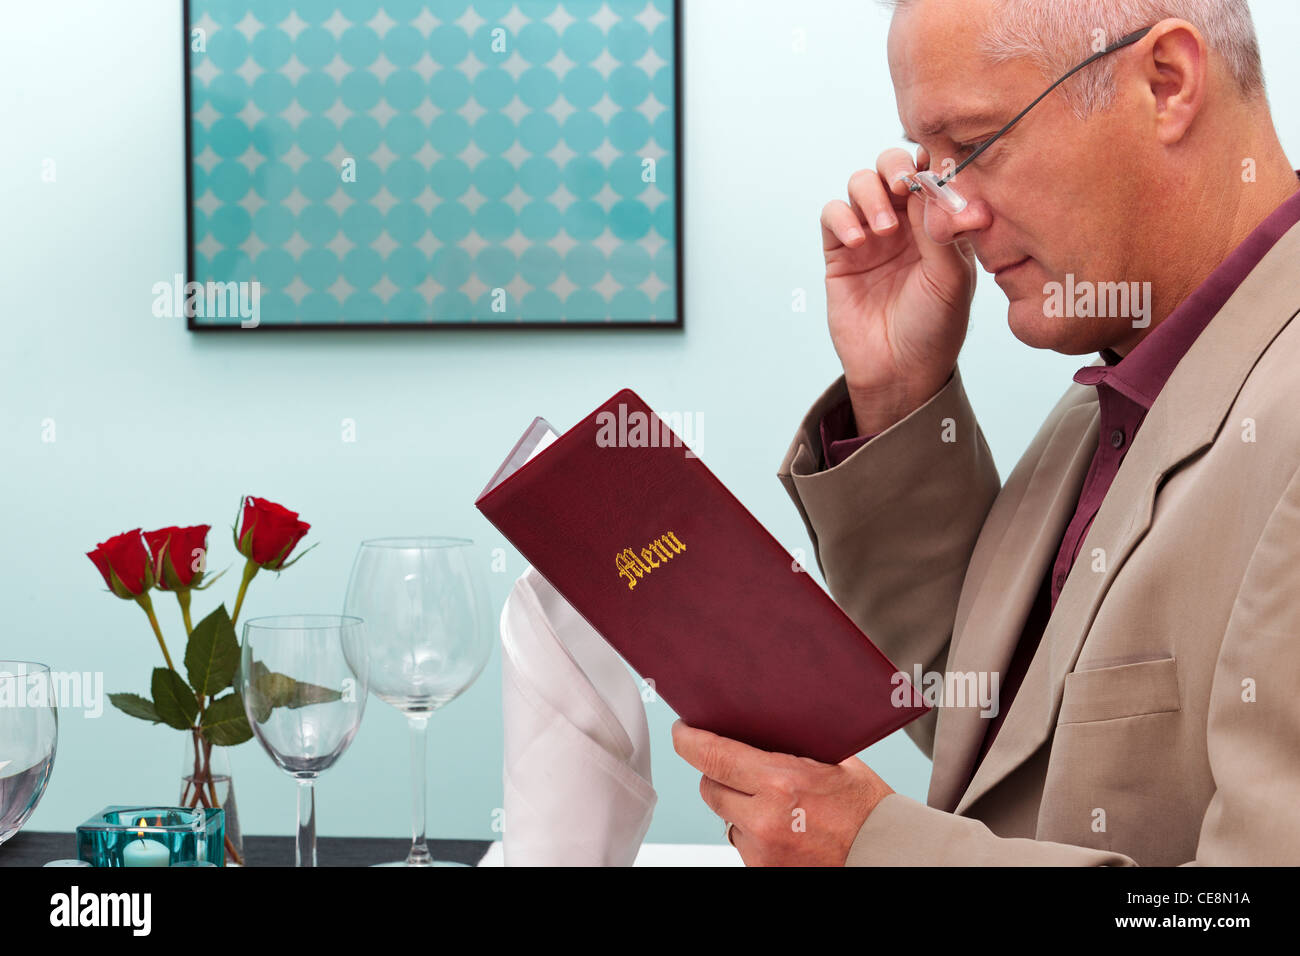 Photo of a man reading the menu in a restaurant - Stock Image